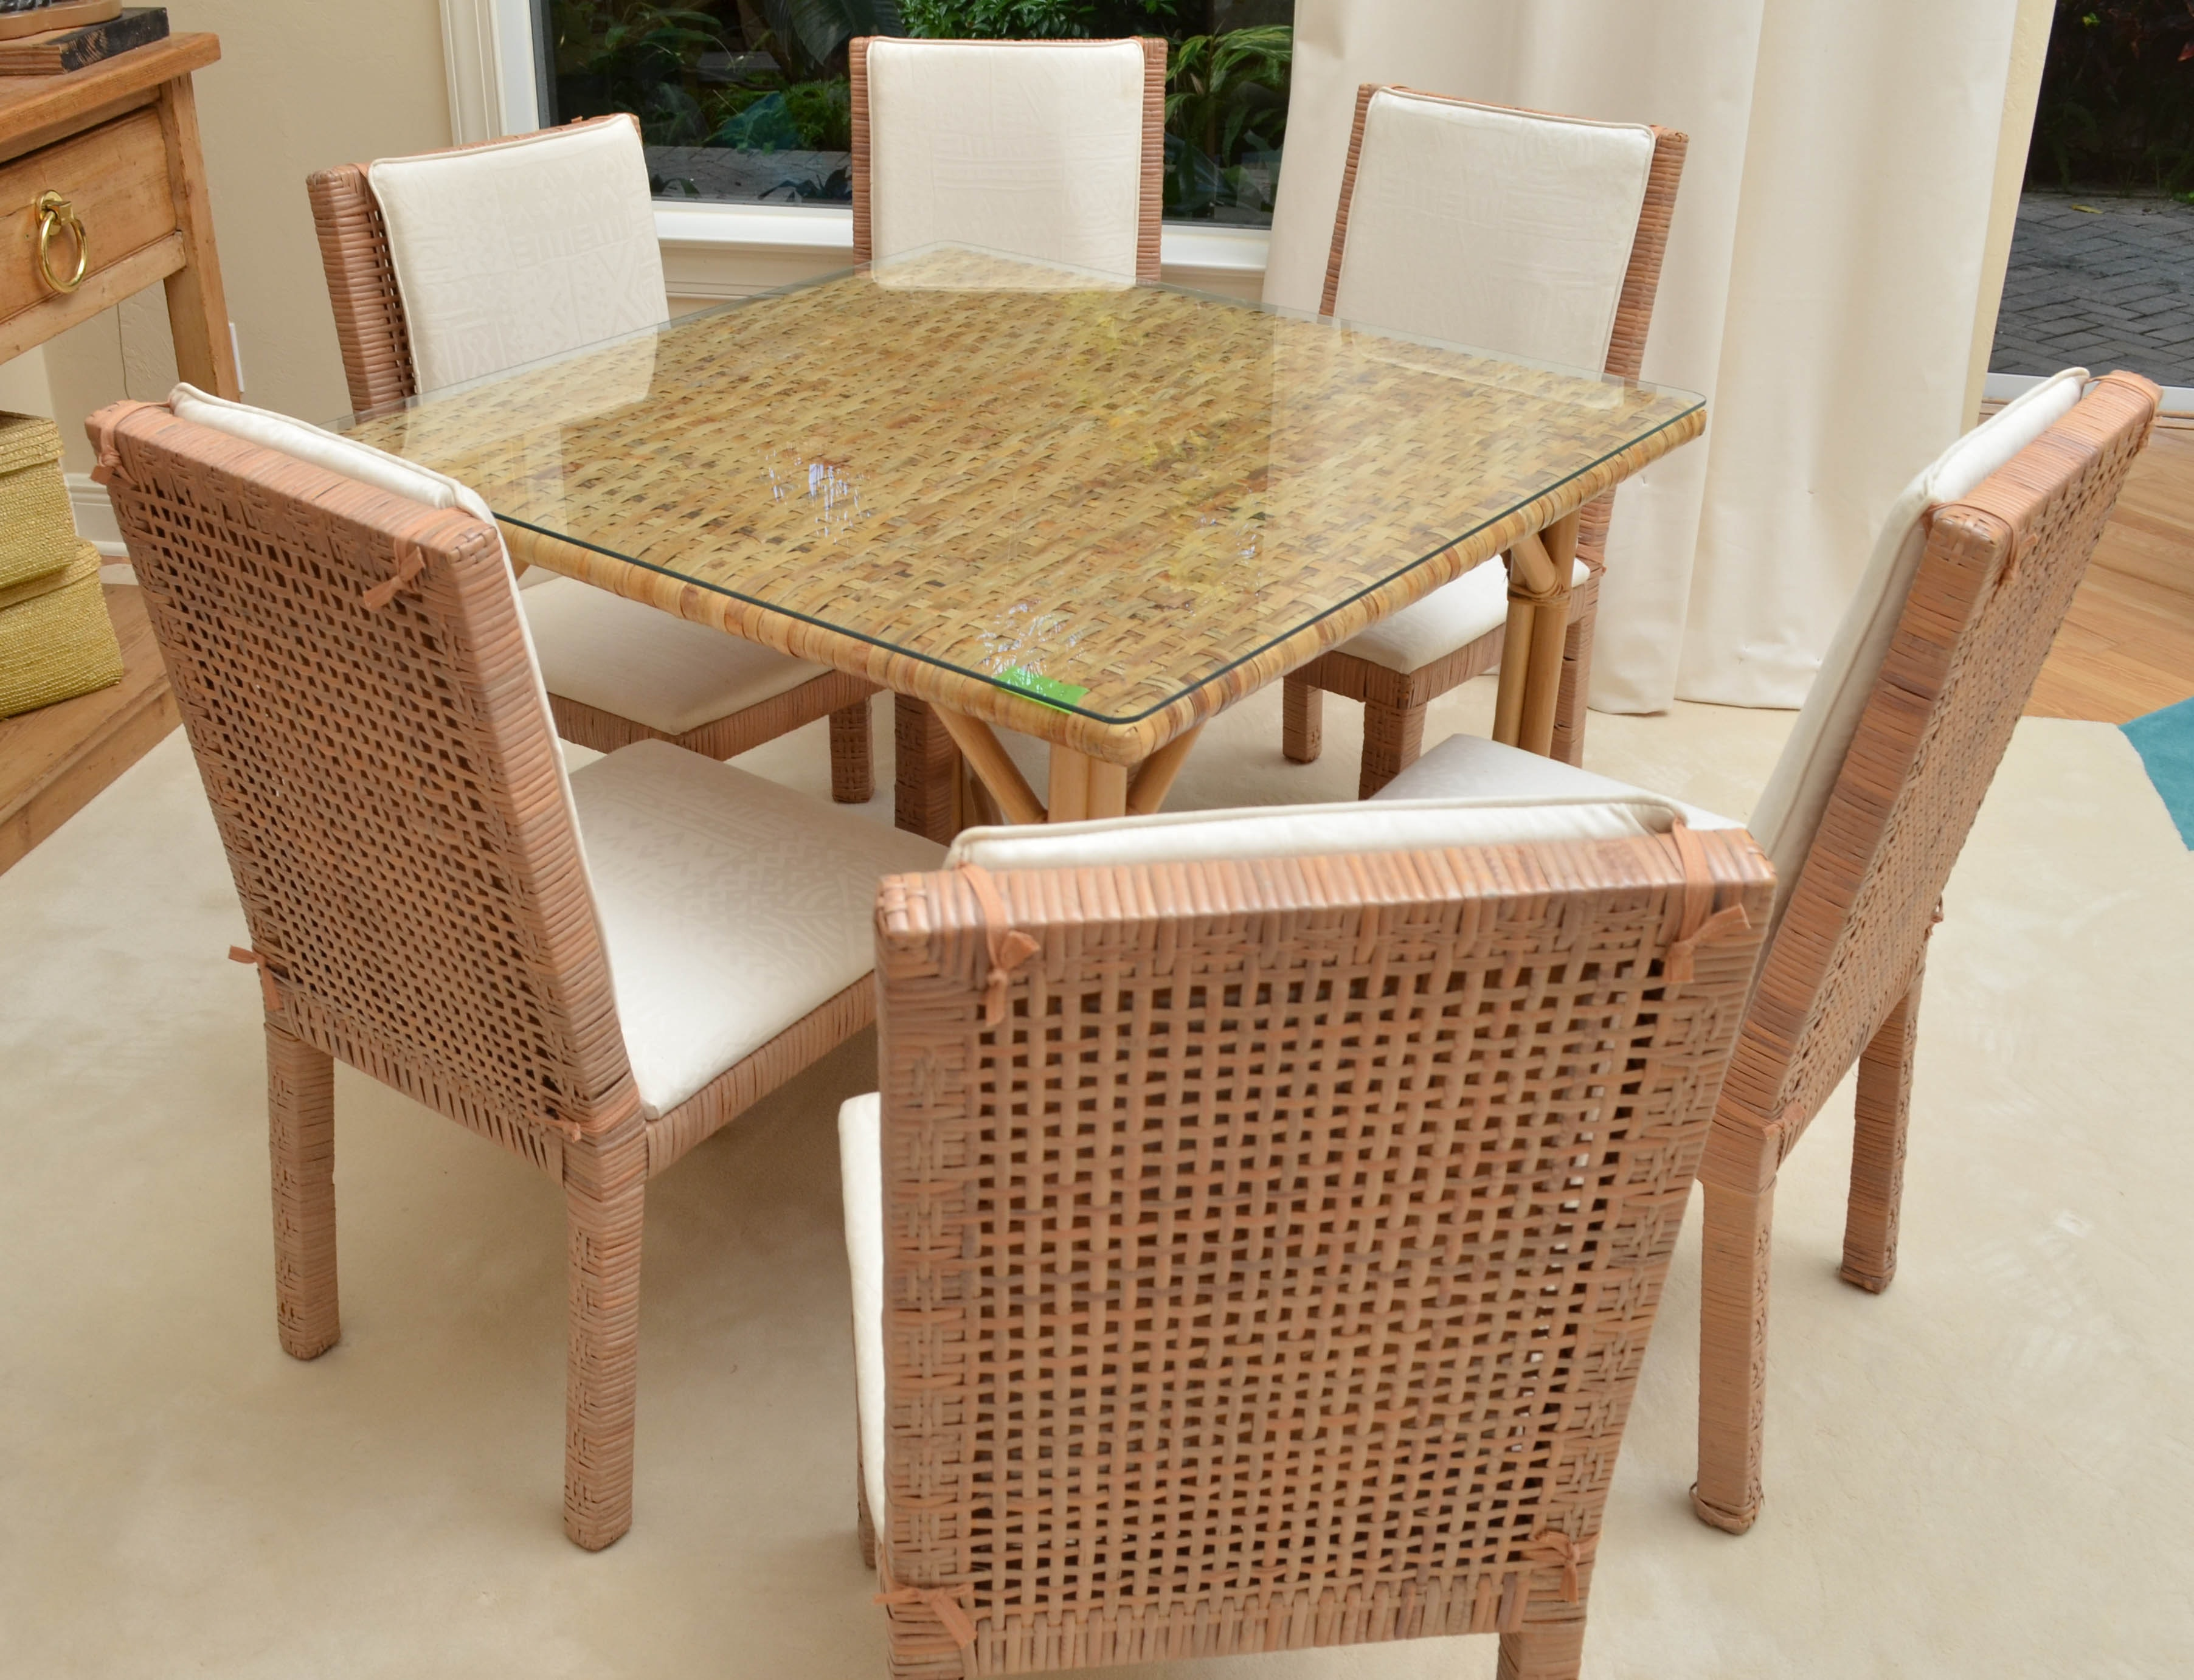 Glass Top Wicker Dining Table With Six Chairs EBTH : DSC6656jpgixlibrb 11 from www.ebth.com size 880 x 906 jpeg 177kB